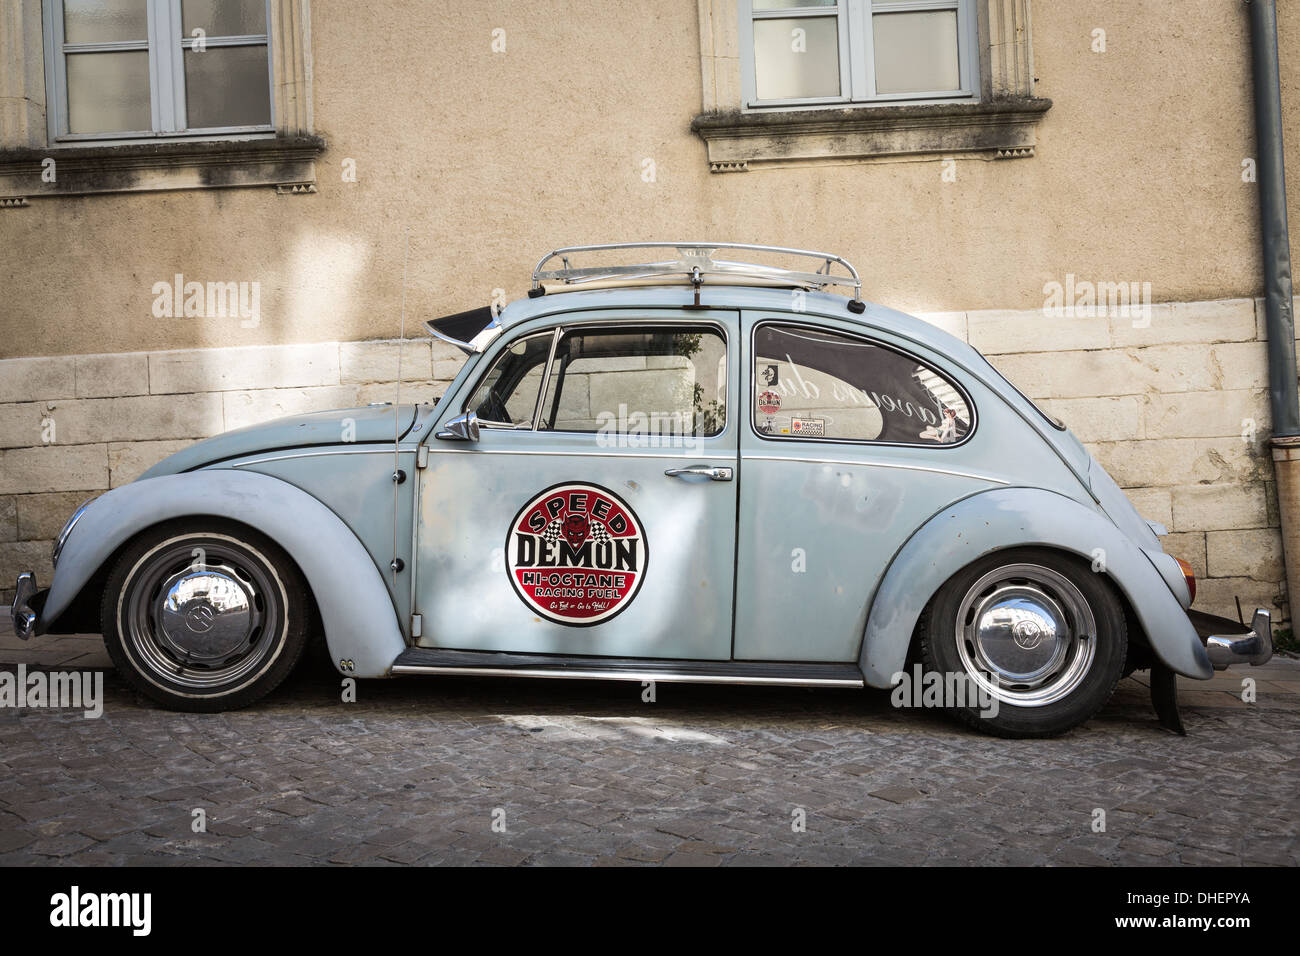 Old classic VW Beetle parked in street, Grignan, France. - Stock Image